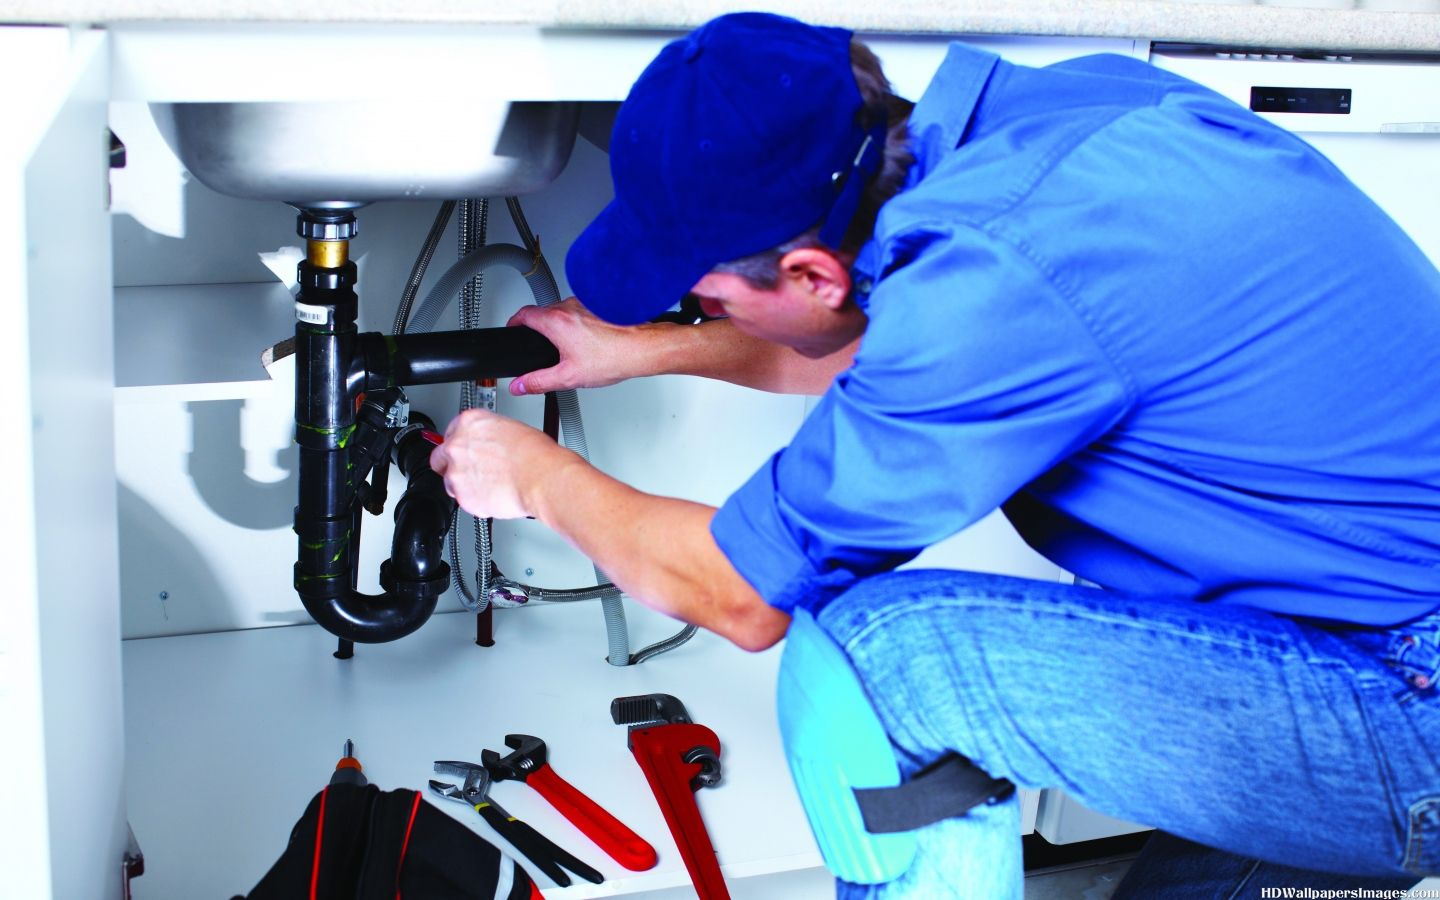 Plumber-At-Work-With-Tools-Images